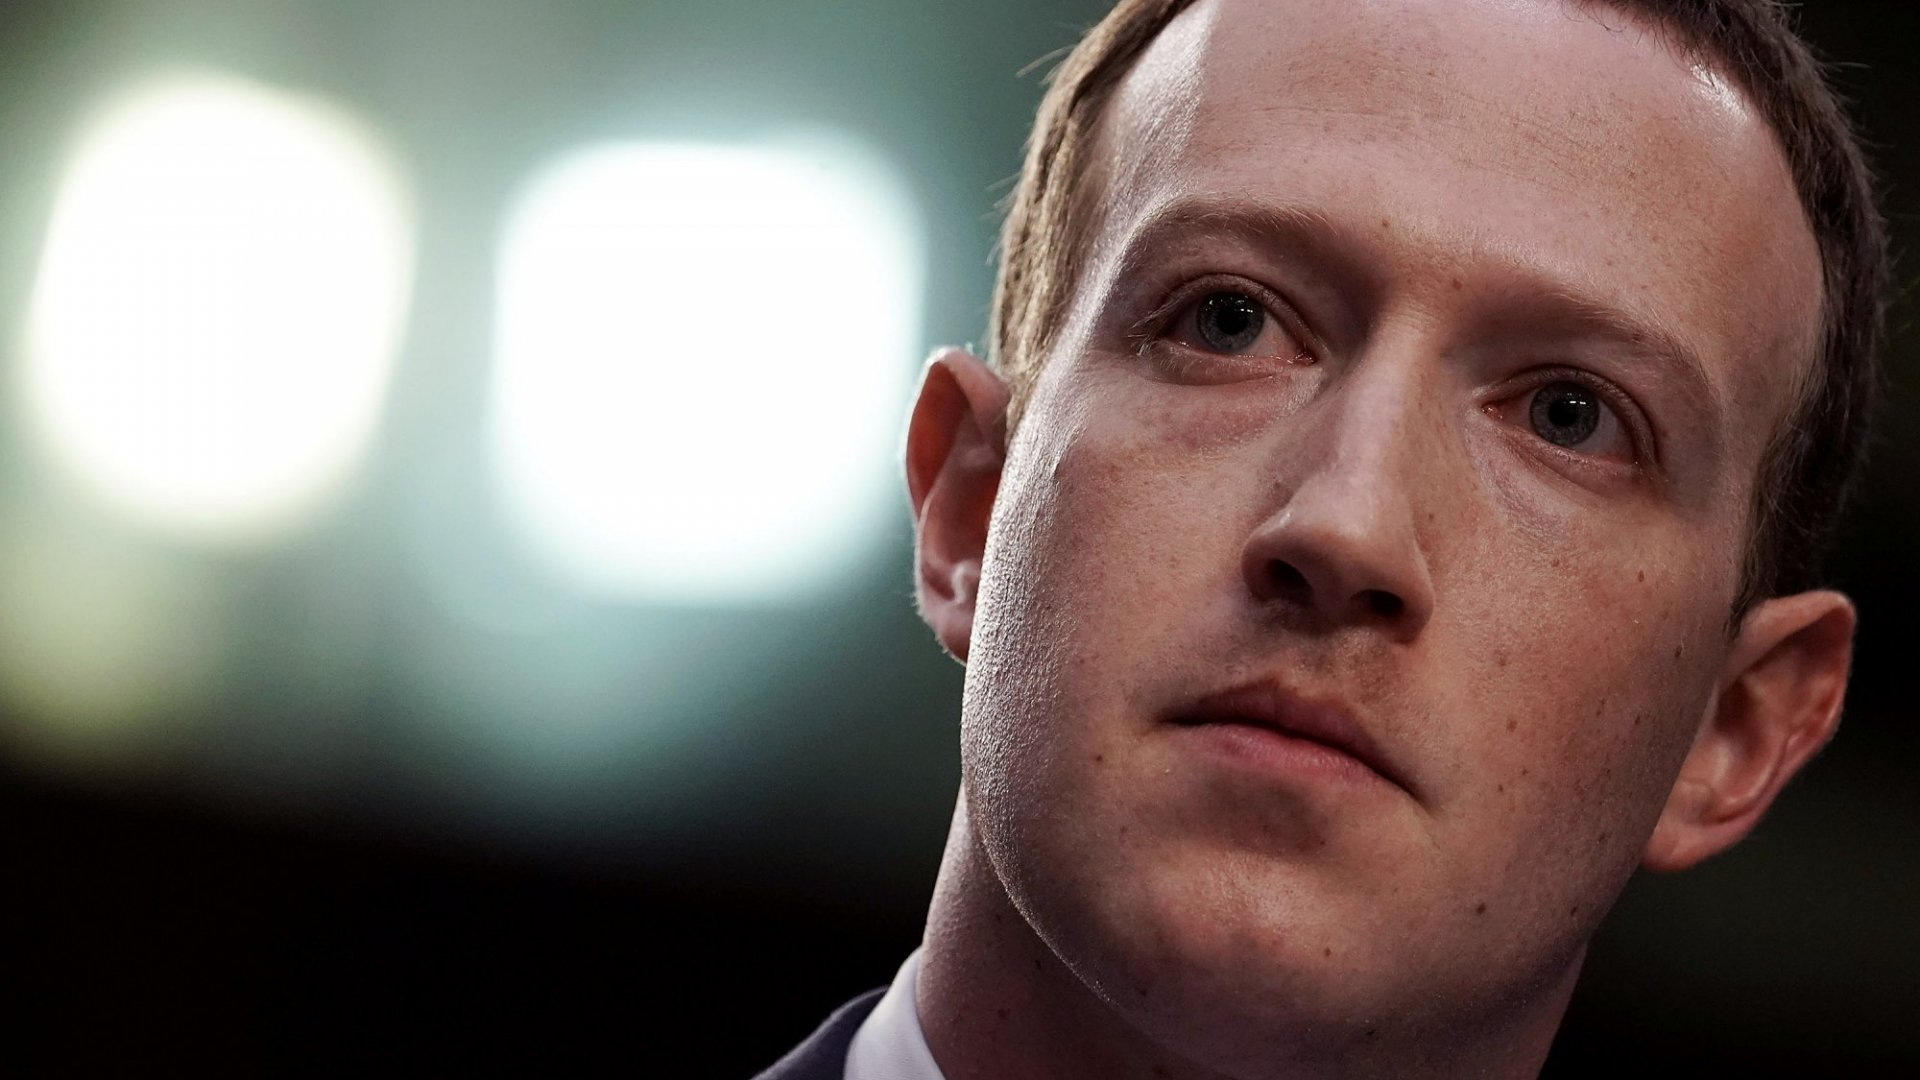 What Mark Zuckerberg's Testimony Means for the Future of Facebook